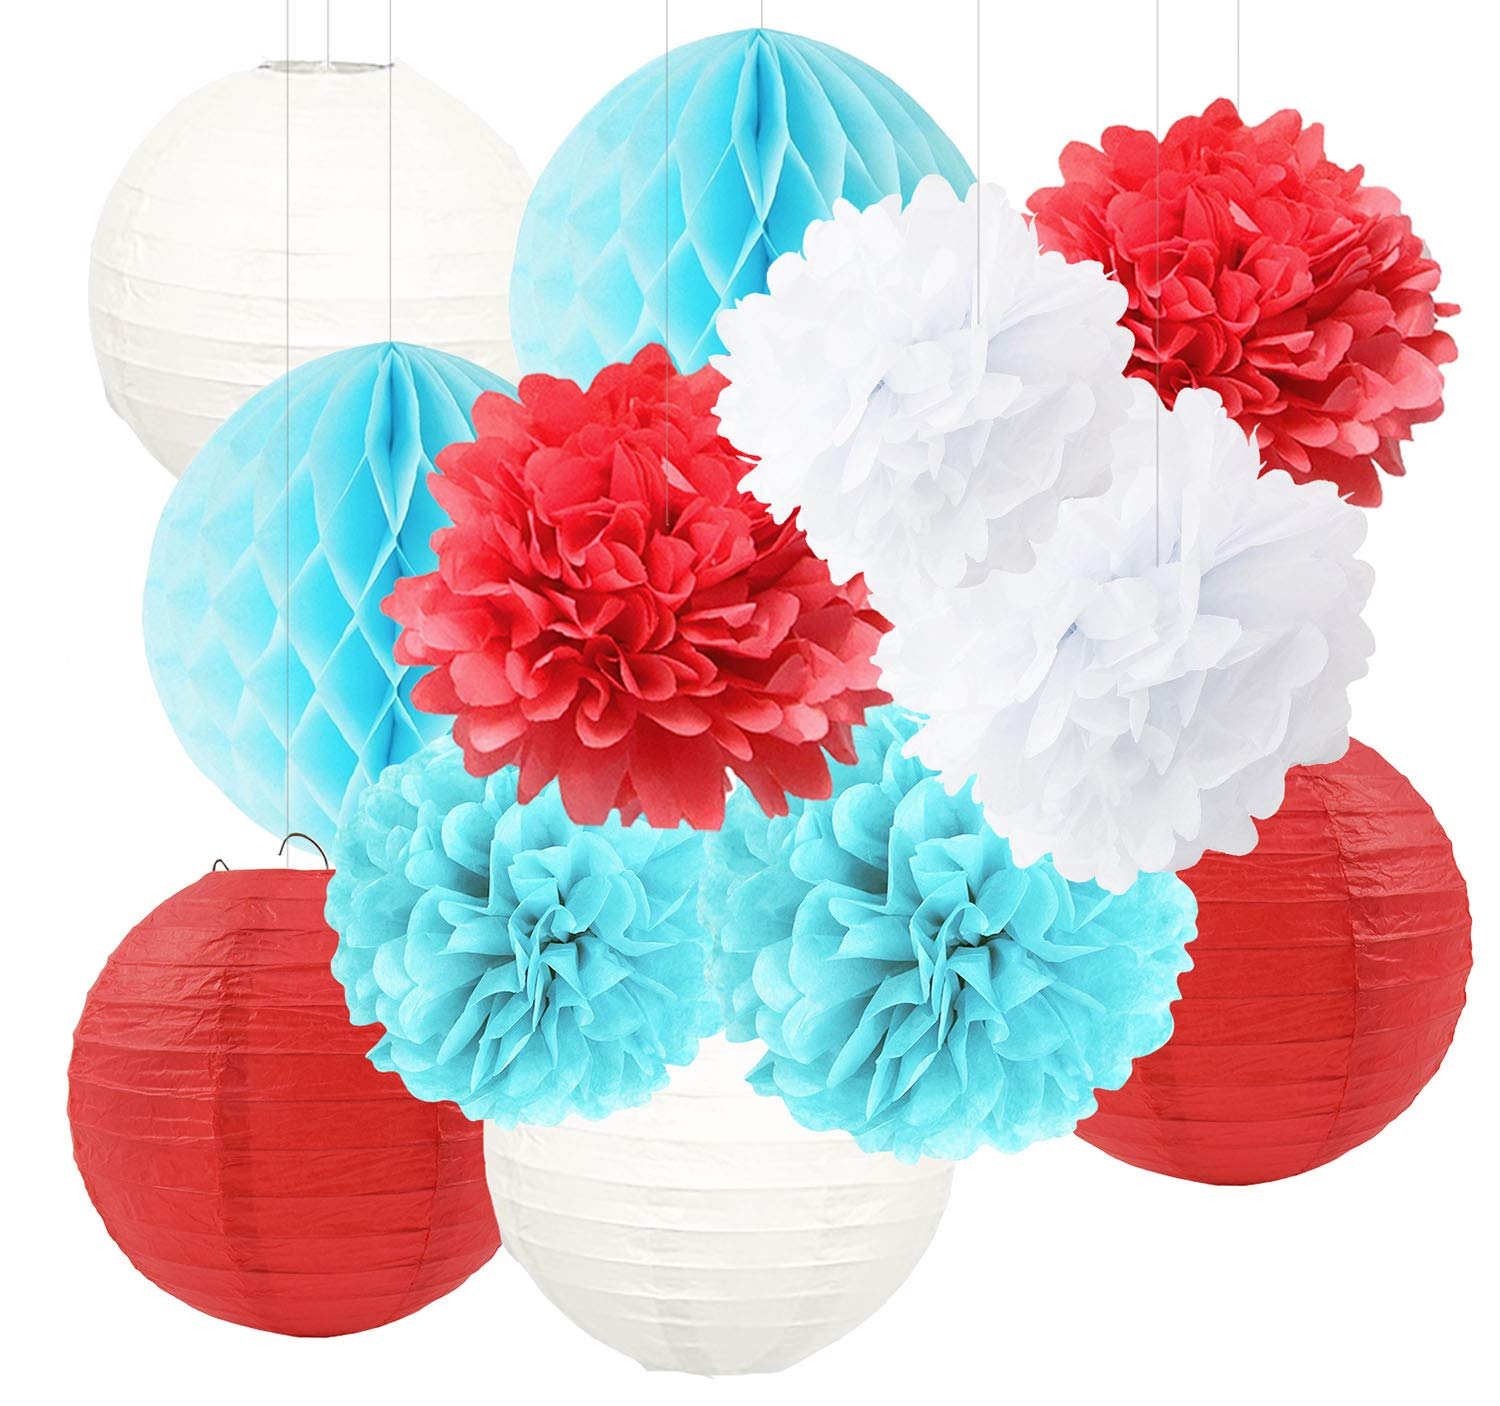 Dr Seuss Cat in The Hat Party/Dr Suess Decor Blue White Red Tissue Paper Flower Paper Lanterns Honeycomb Balls/Dr. Seuss Birthday Decorations/Circus Carnival Party Decorations/Turquoise Red Wedding